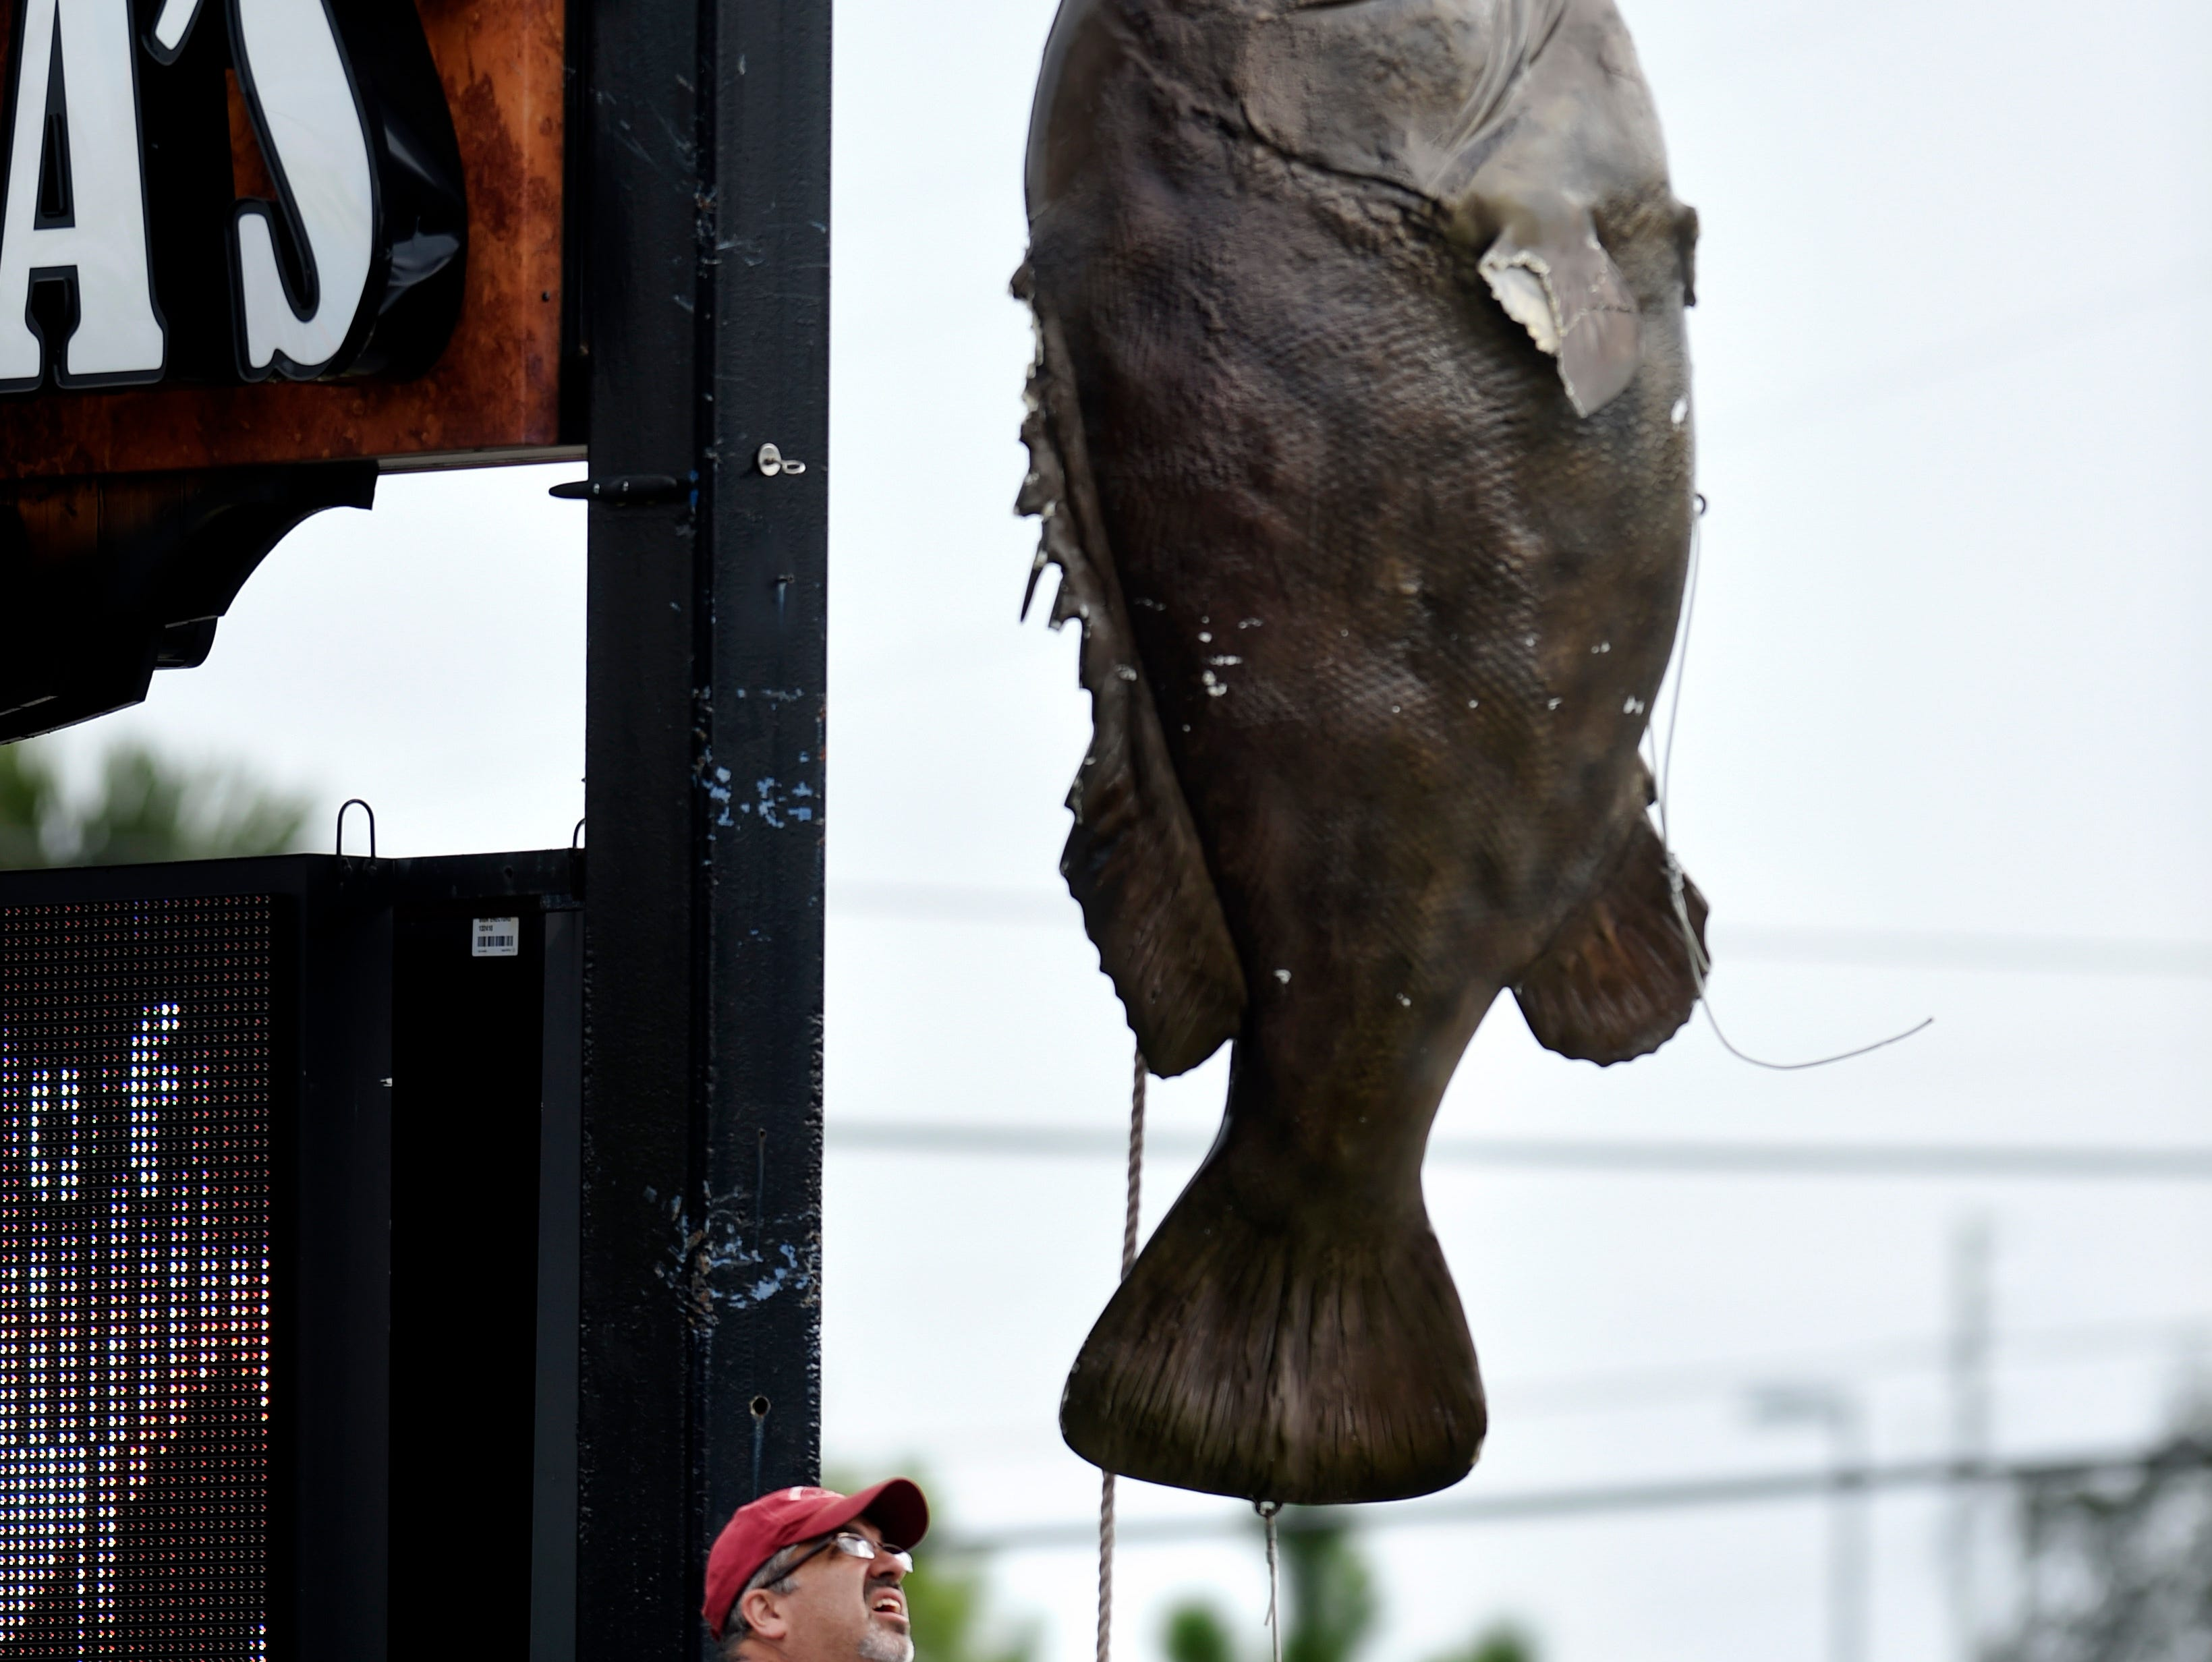 Tracy McCraw takes down a giant fiberglass Warsaw Grouper from a restaurant sign in Destin, Fla. Residents and business owners of this Florida panhandle resort town were busy making preparations Tuesday before the expected landfall of Hurricane Michael on Wednesday.